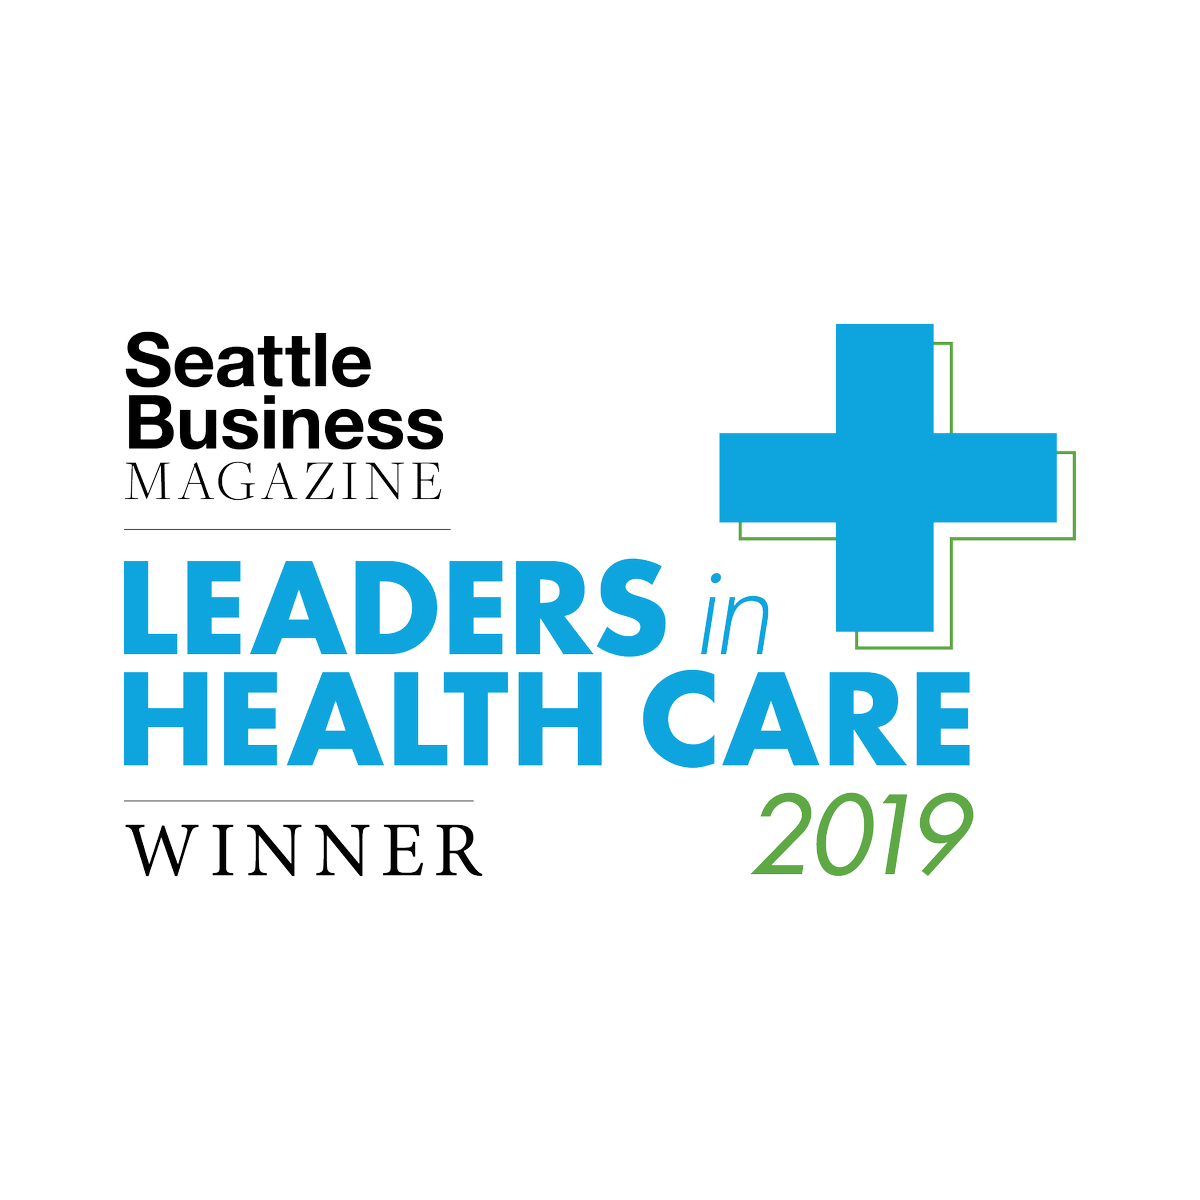 leaders in healthcare 2019.png